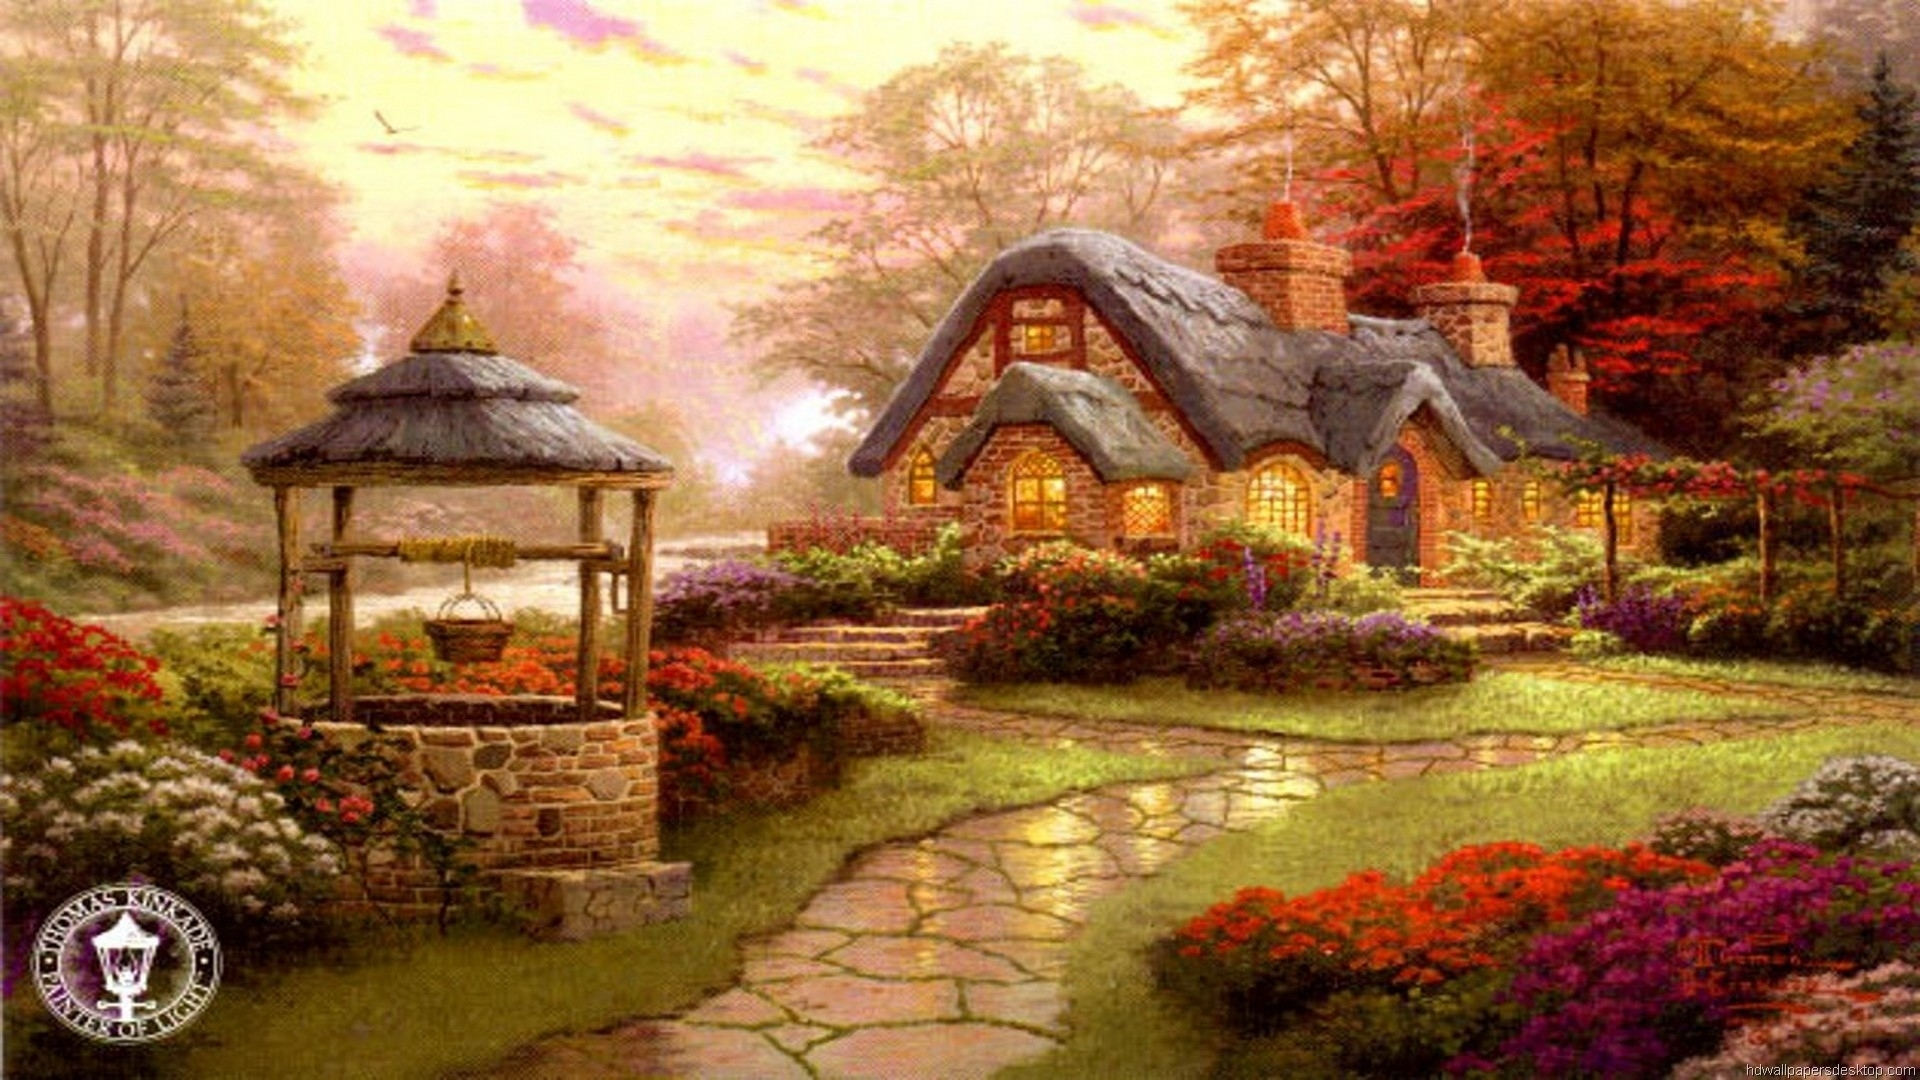 10 Best Thomas Kinkade Screensavers Windows 7 FULL HD 1920×1080 For PC Background